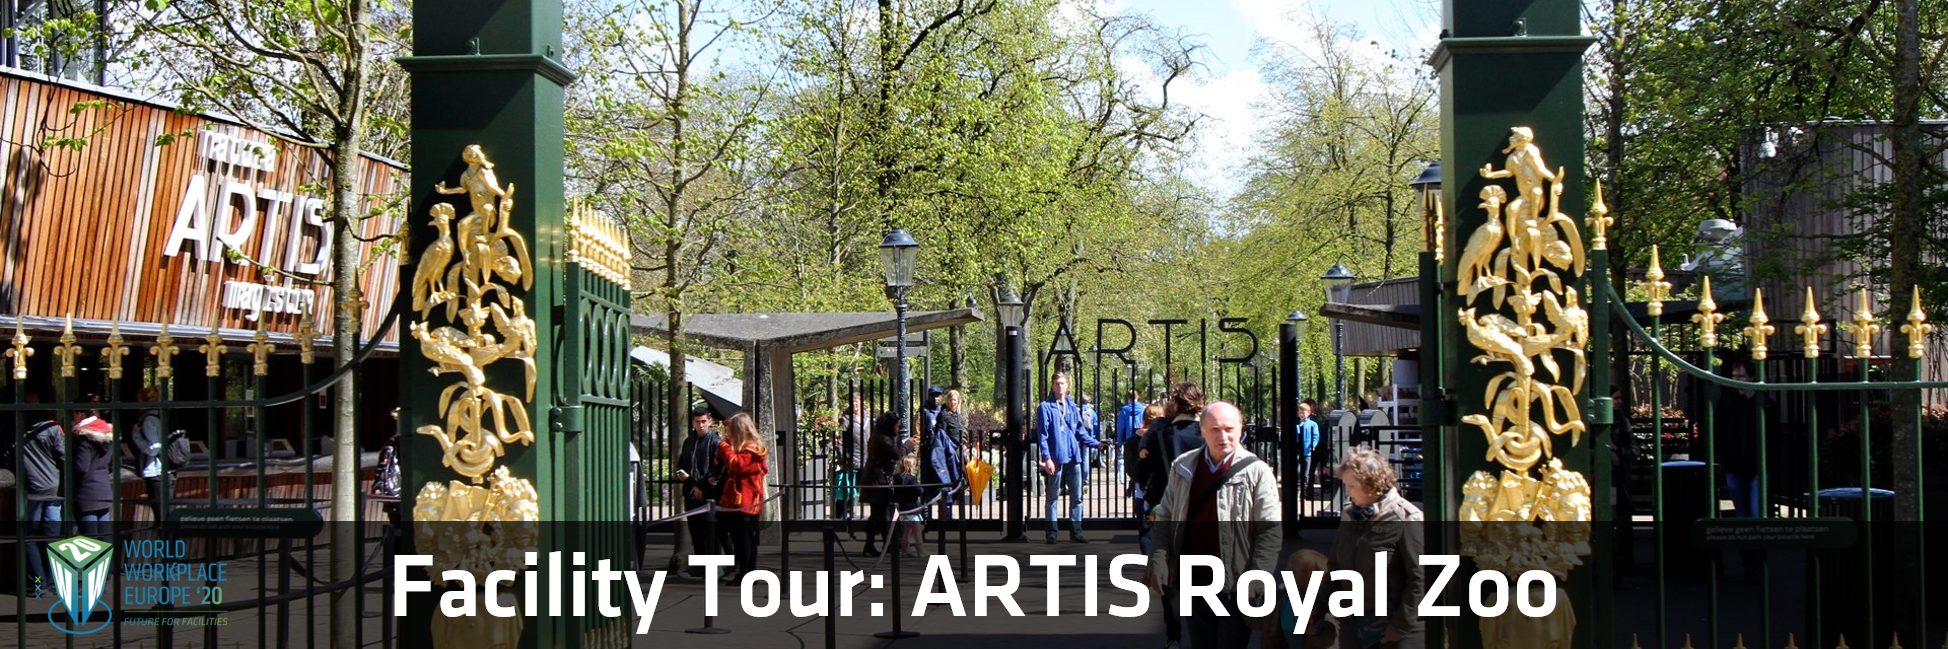 Facility Tour - Artis Royal Zoo